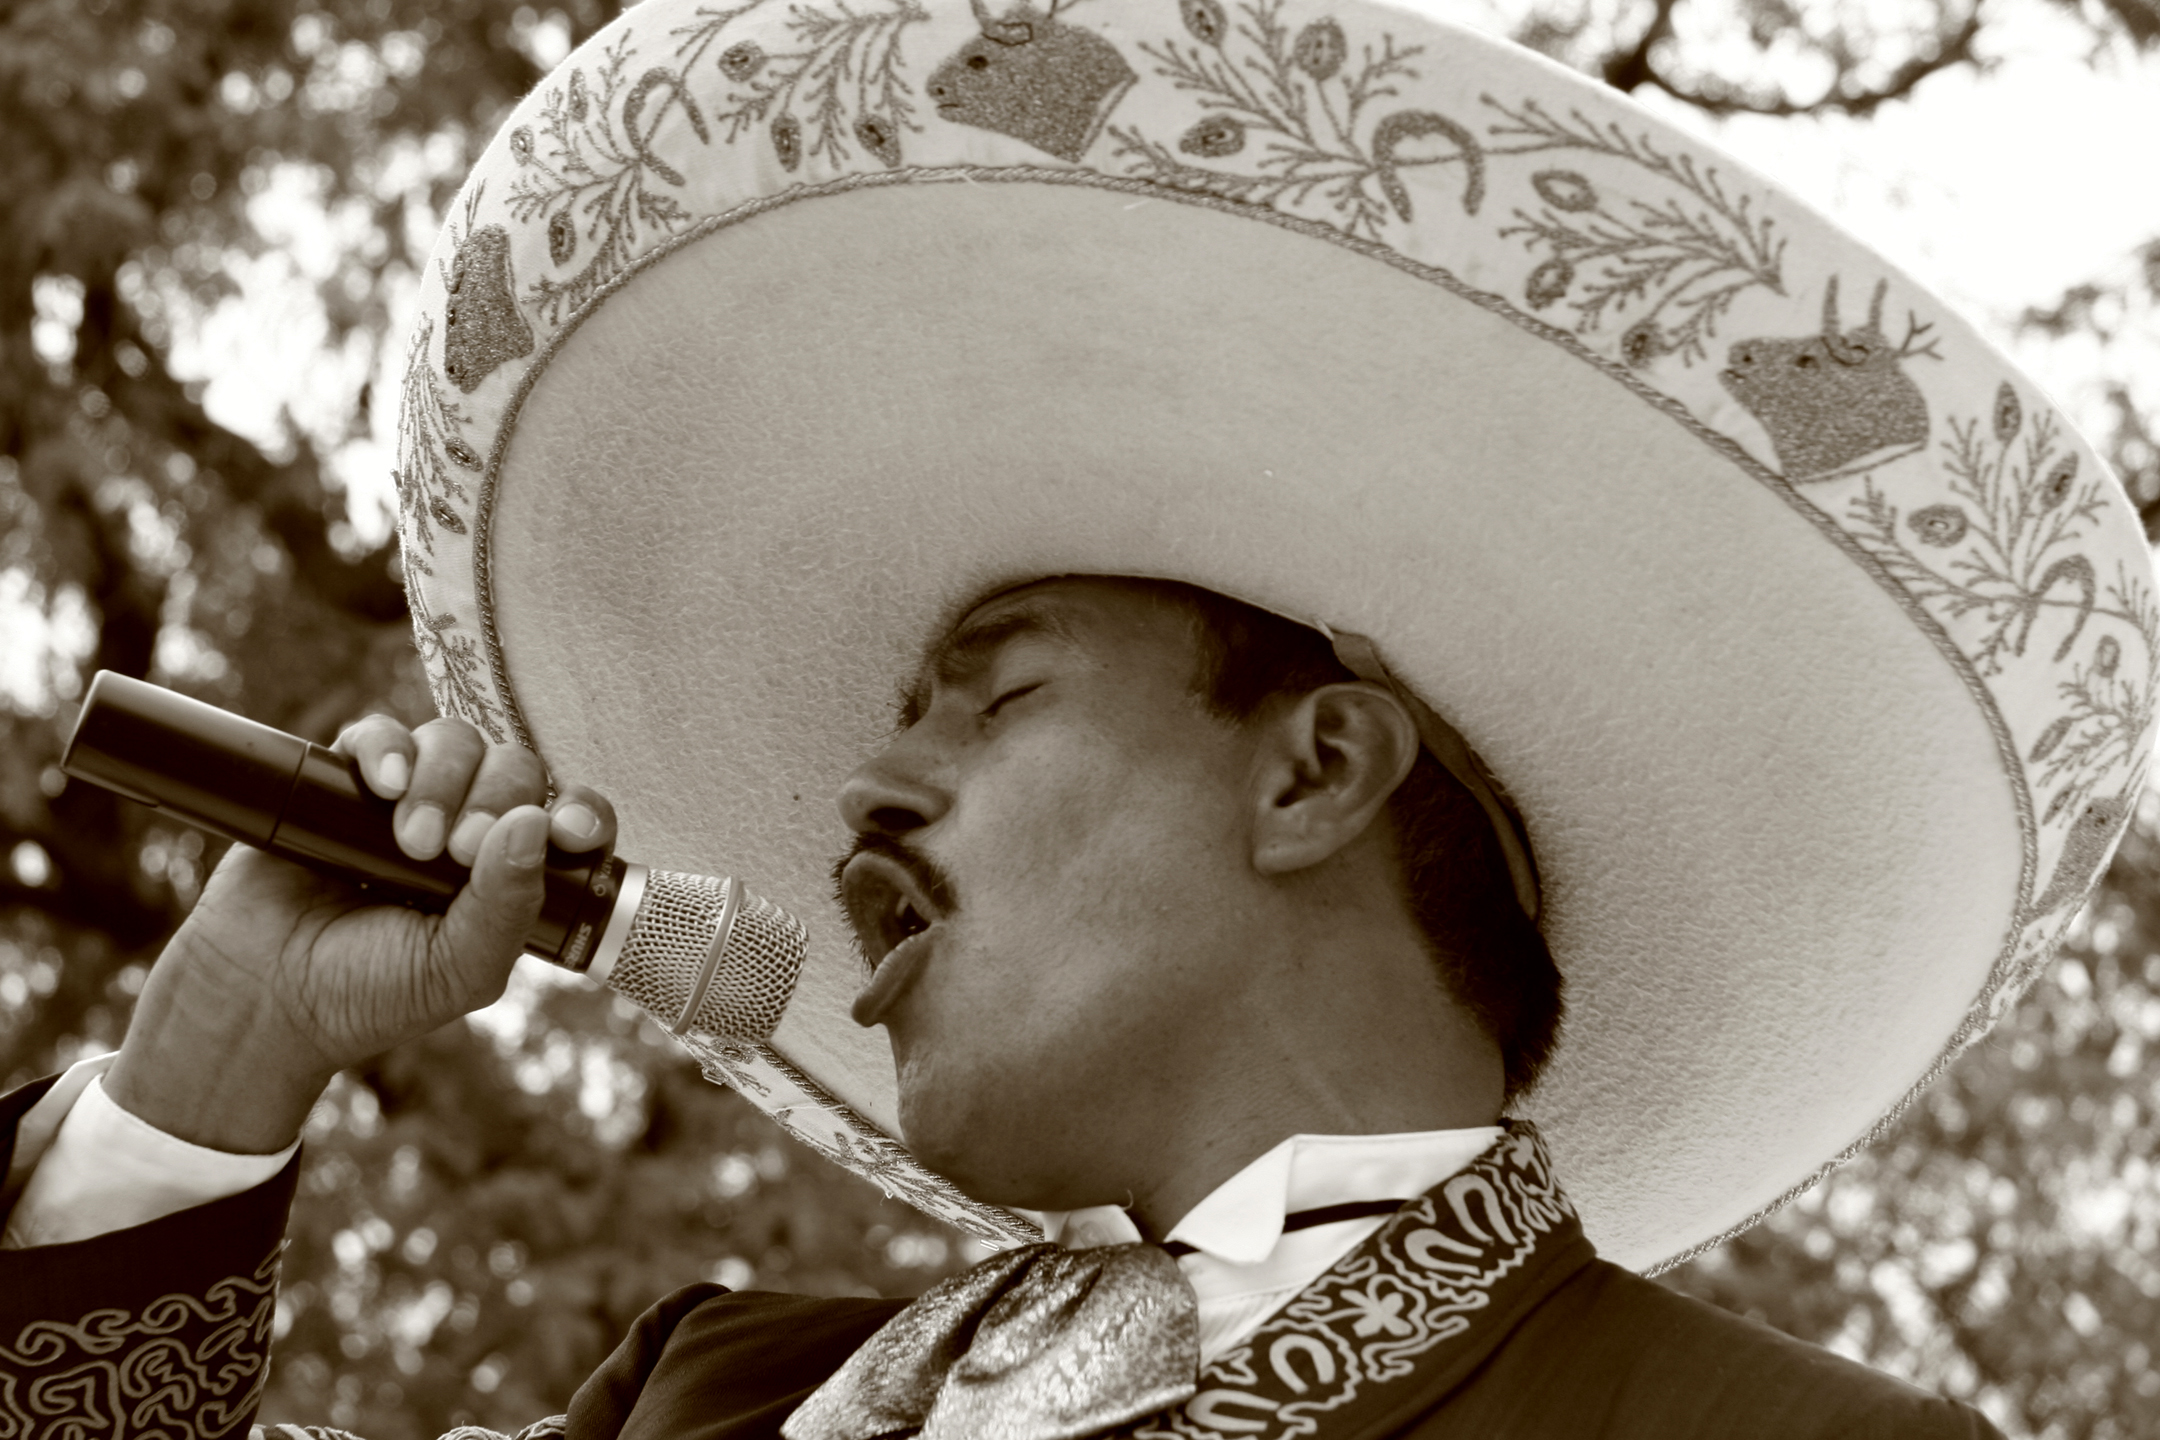 Mariachi_singer,_Chicago,_Illinois,_USA_-_20060814.jpg